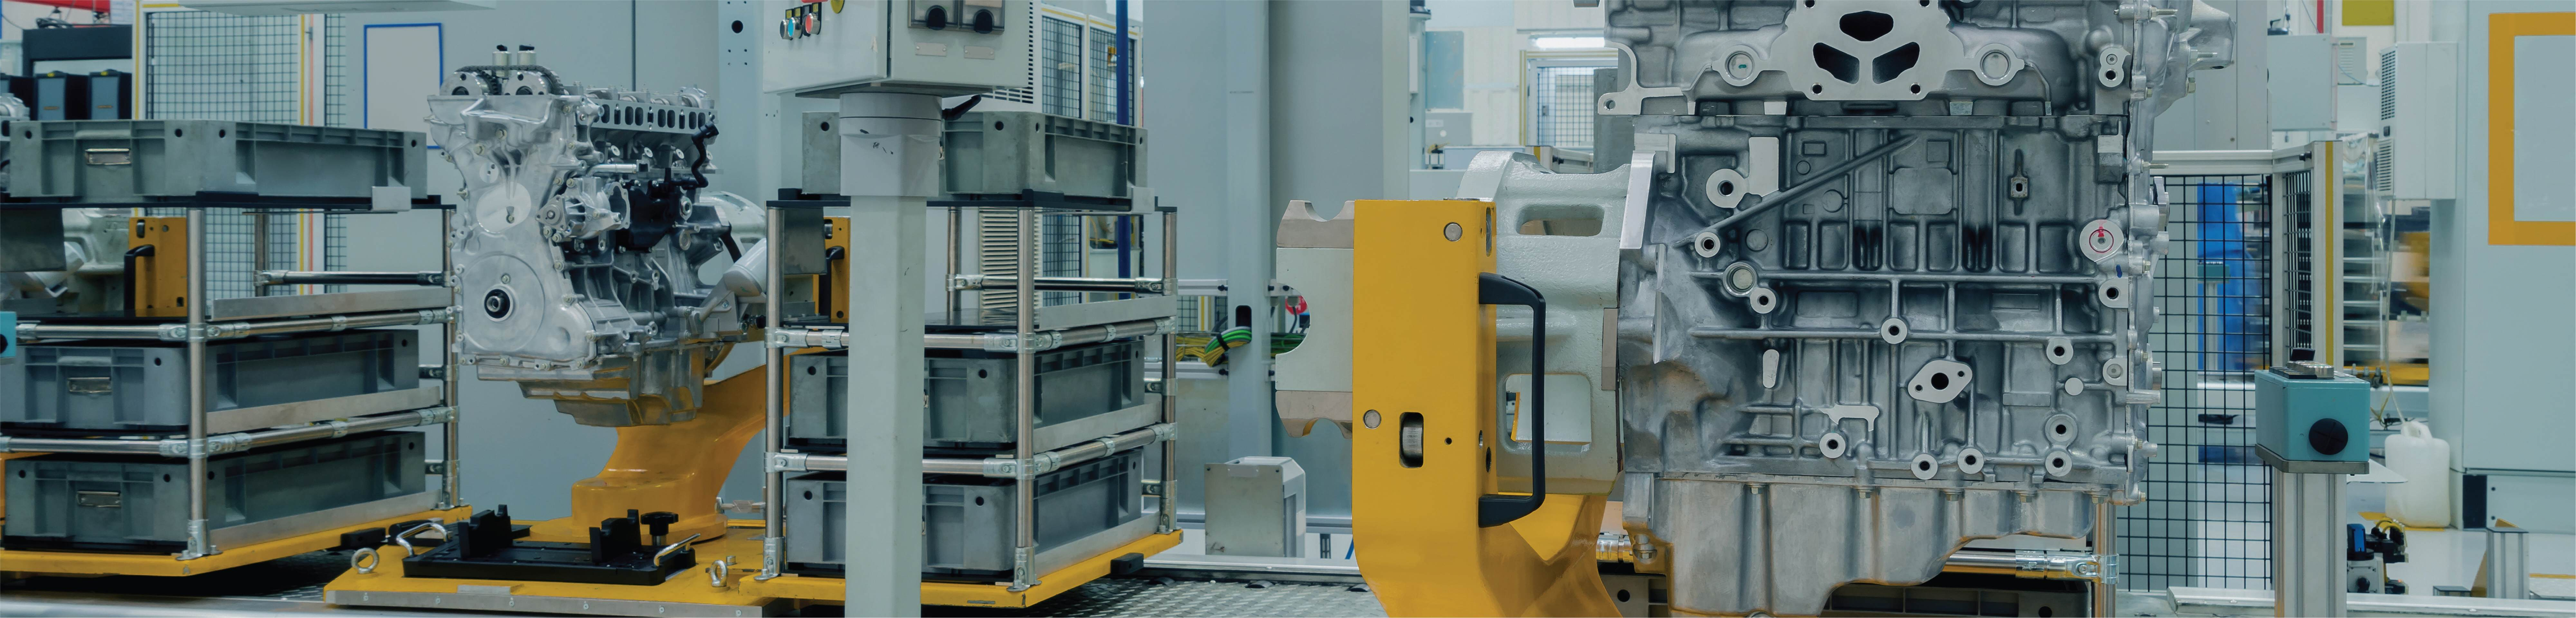 Texcan - Industries - Manufacturing & OEM - Banner Image 1920x460px .jpg